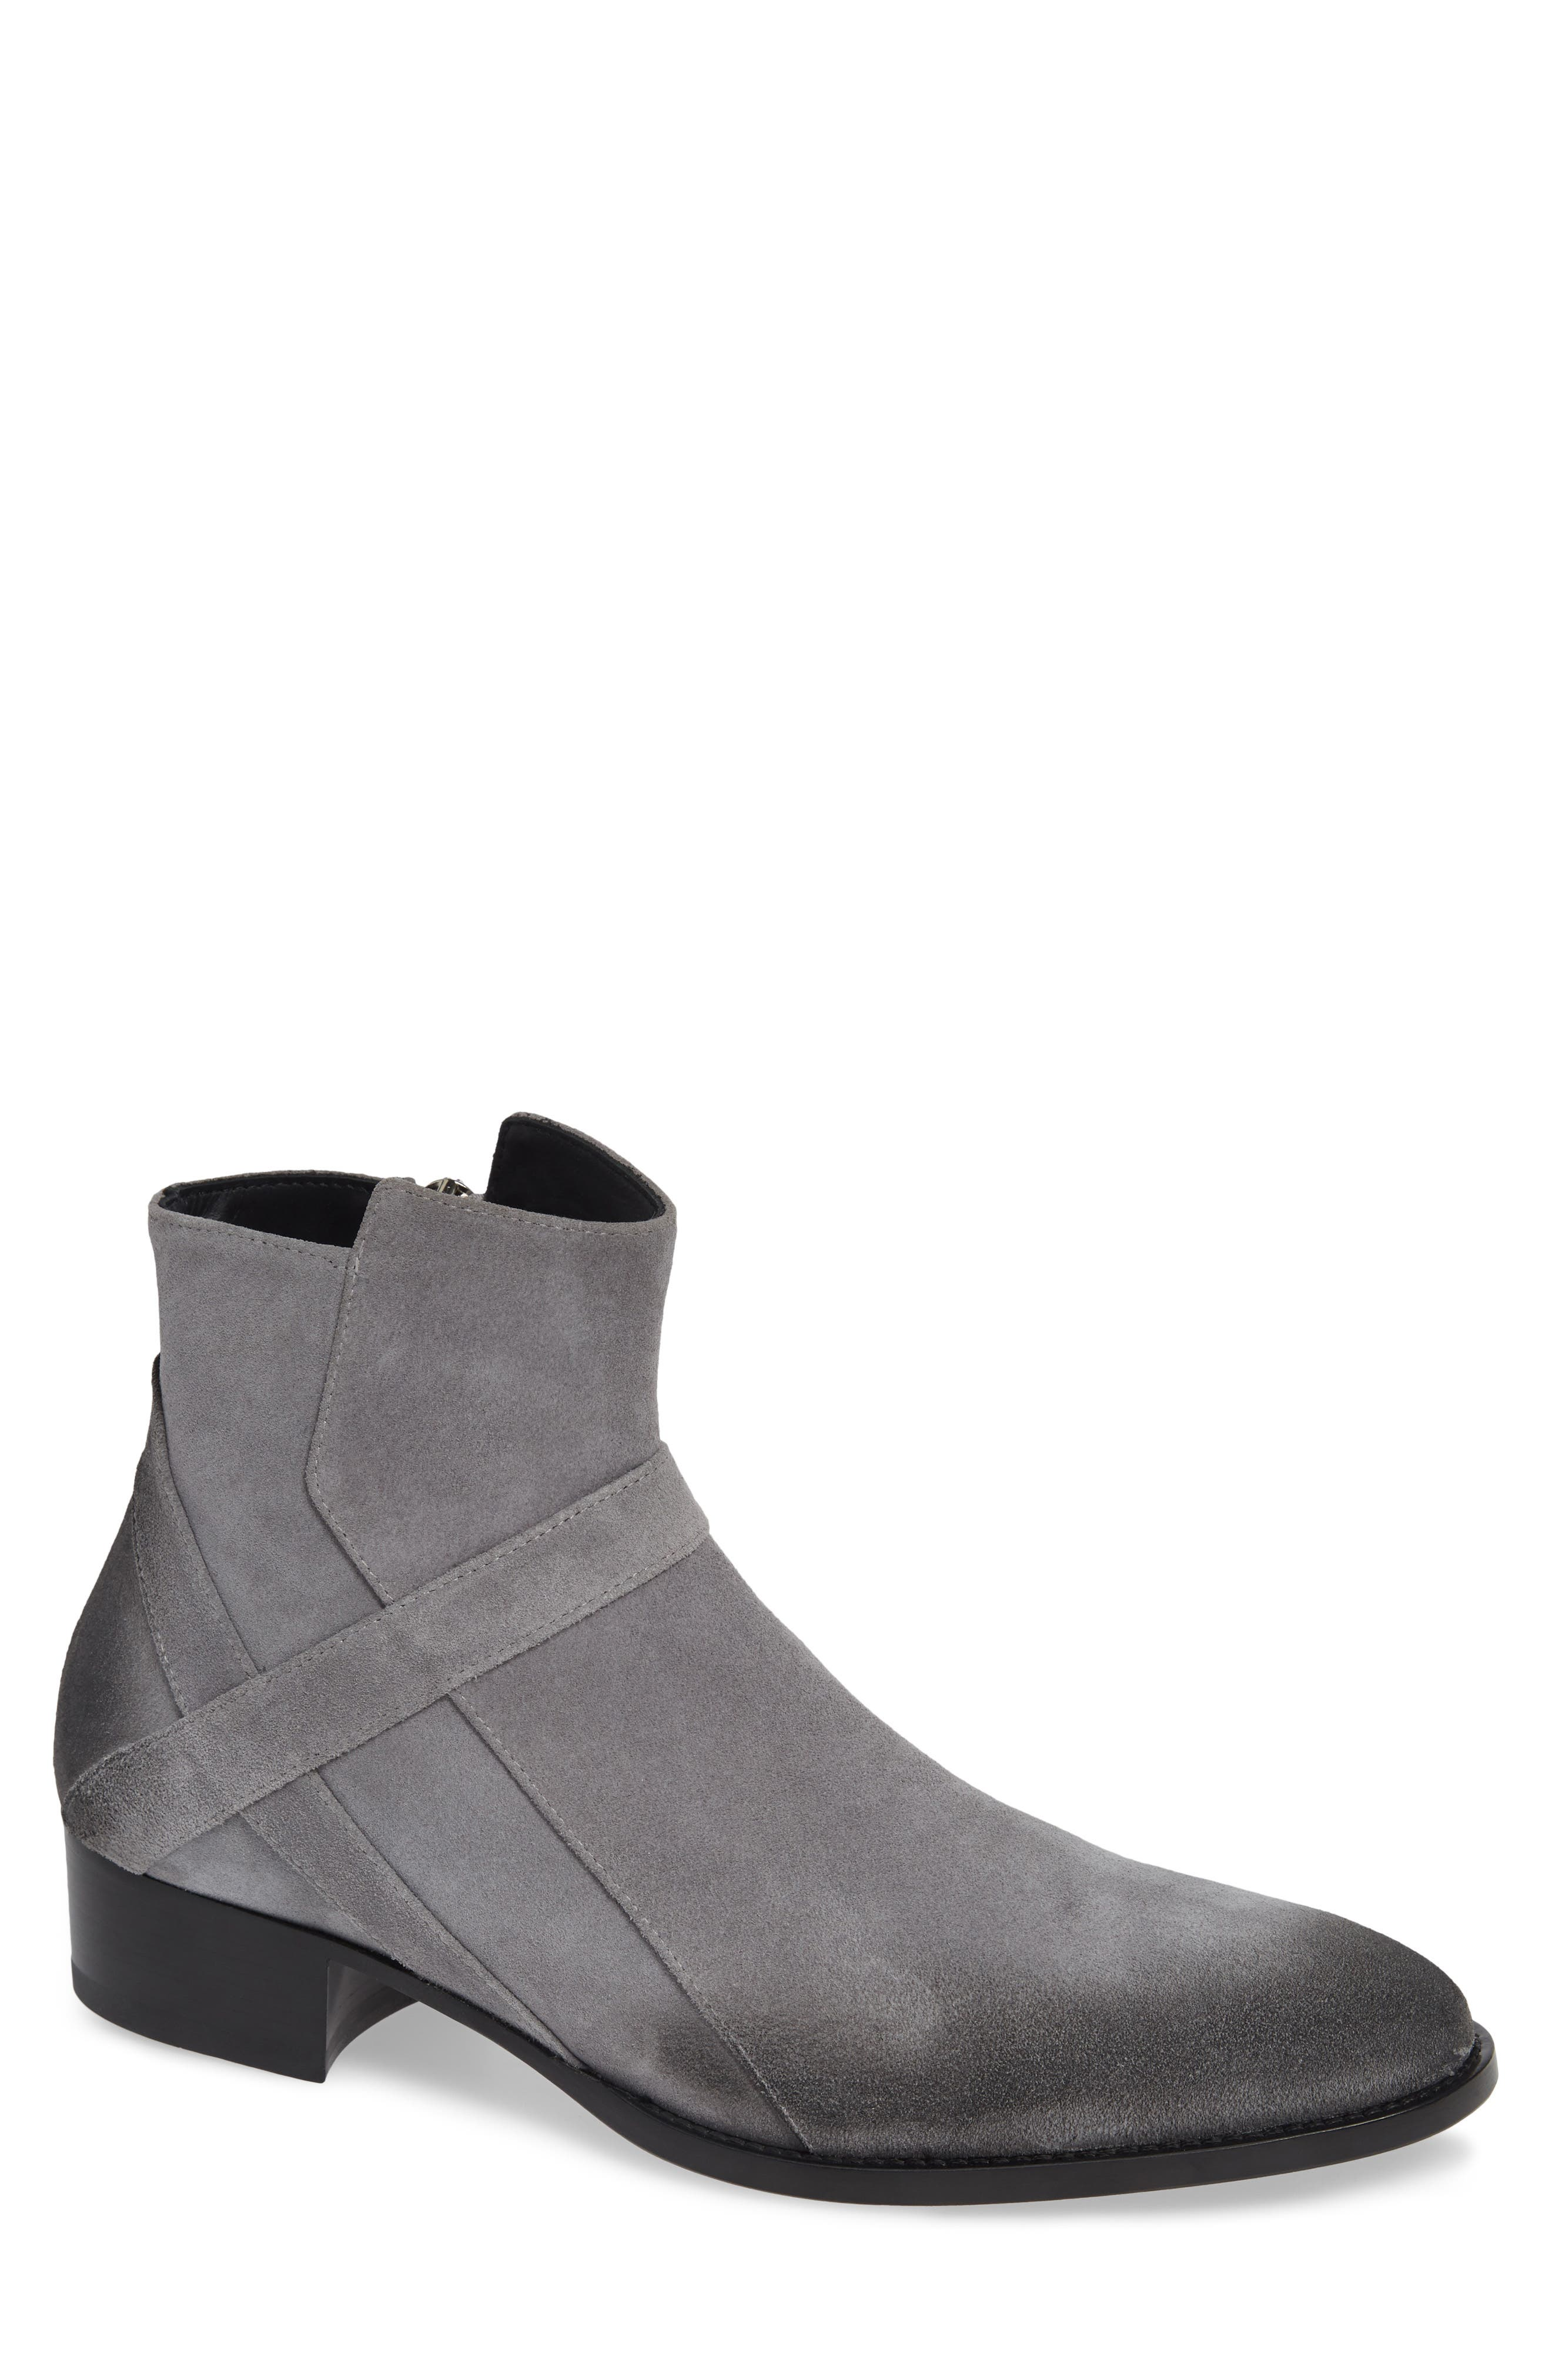 GRAND VOYAGE Bowie Zip Boot in Grey Suede/ Black